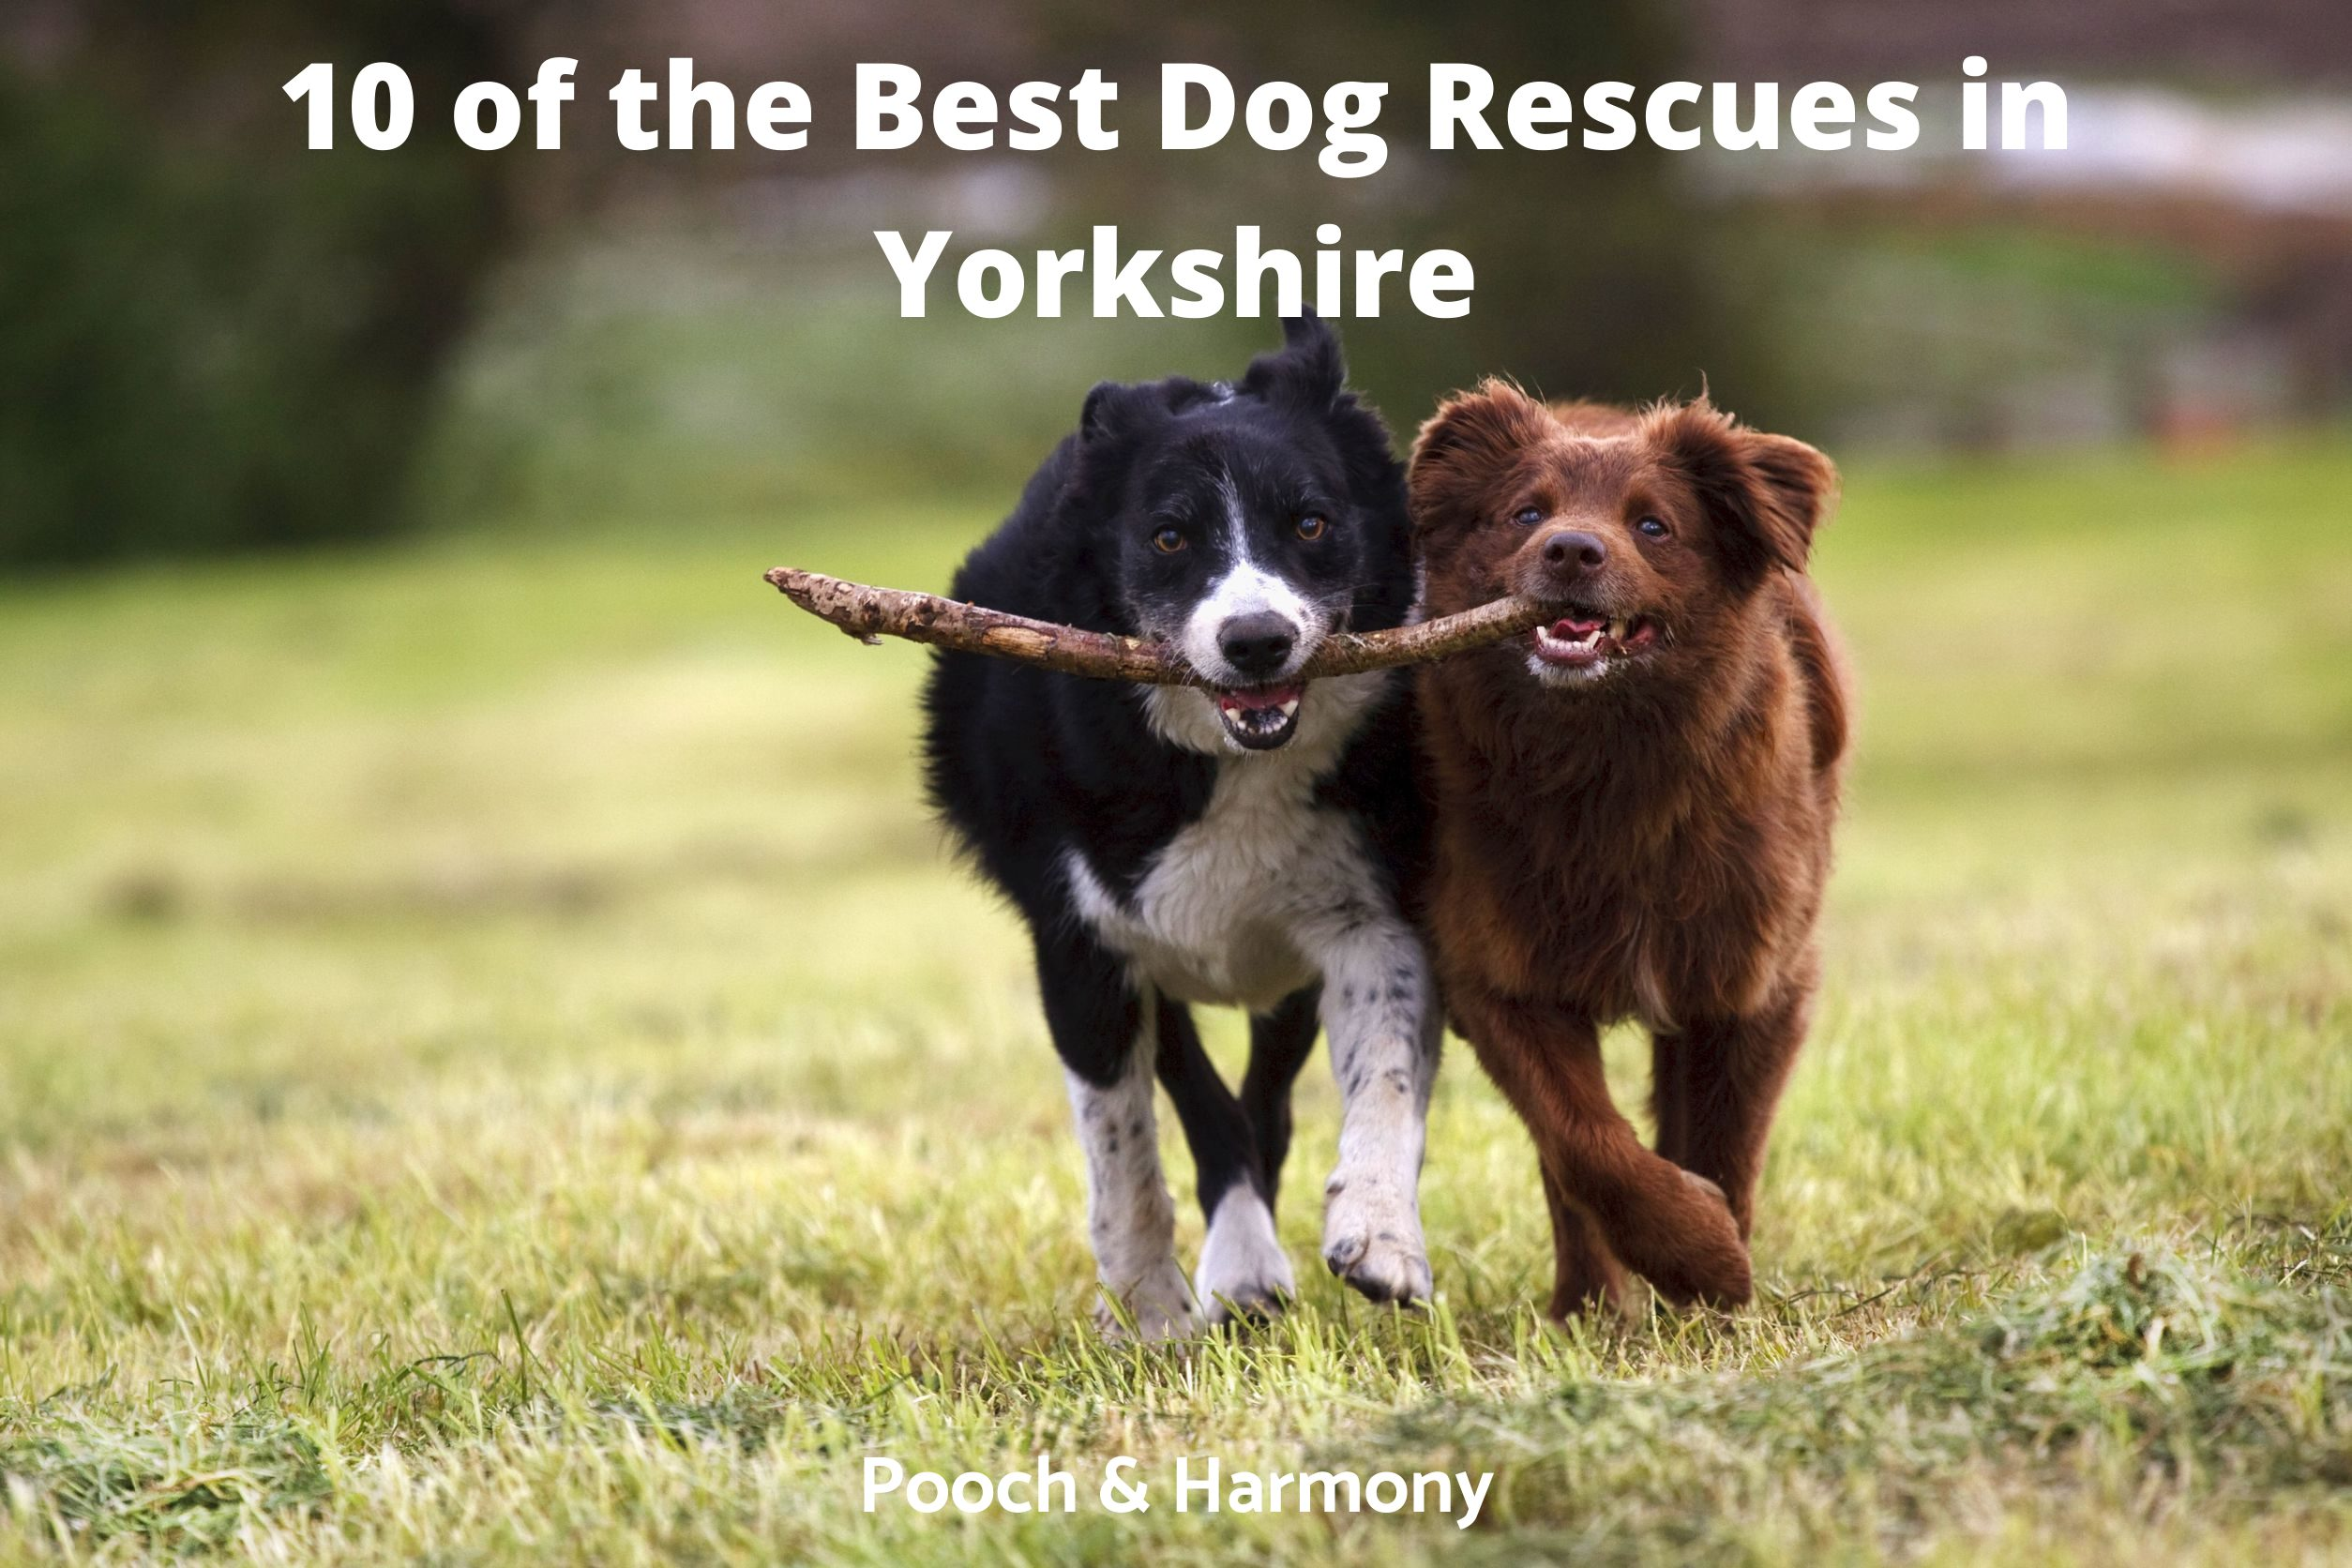 Dog Rescues in Yorkshire